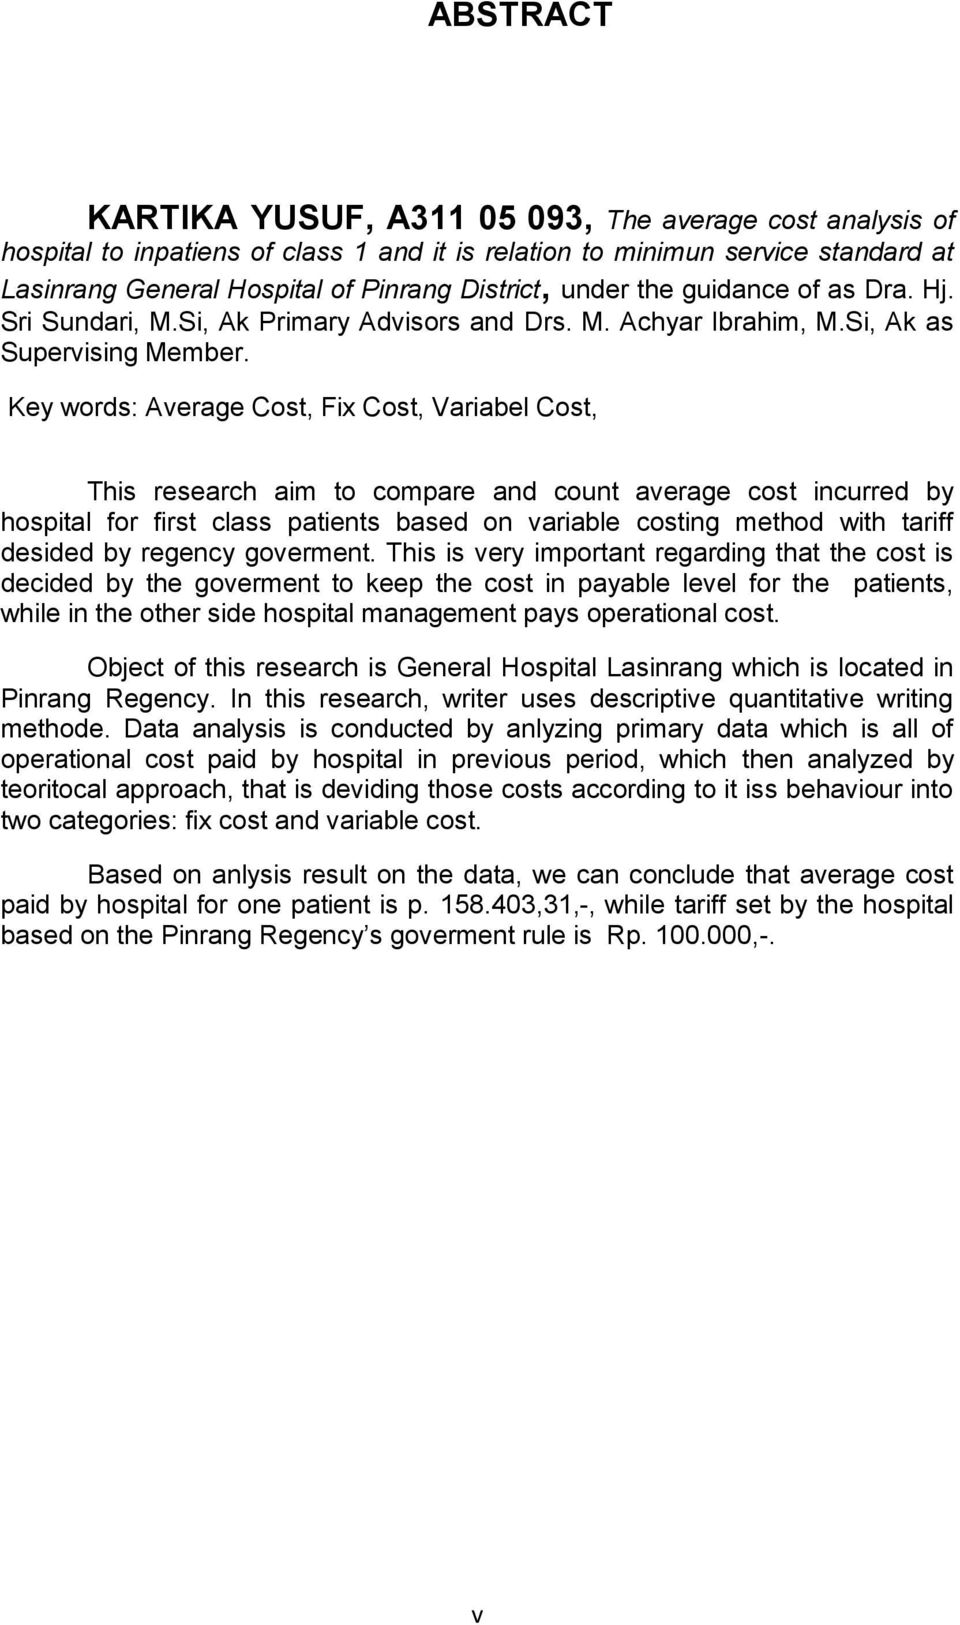 Key words: Average Cost, Fix Cost, Variabel Cost, This research aim to compare and count average cost incurred by hospital for first class patients based on variable costing method with tariff